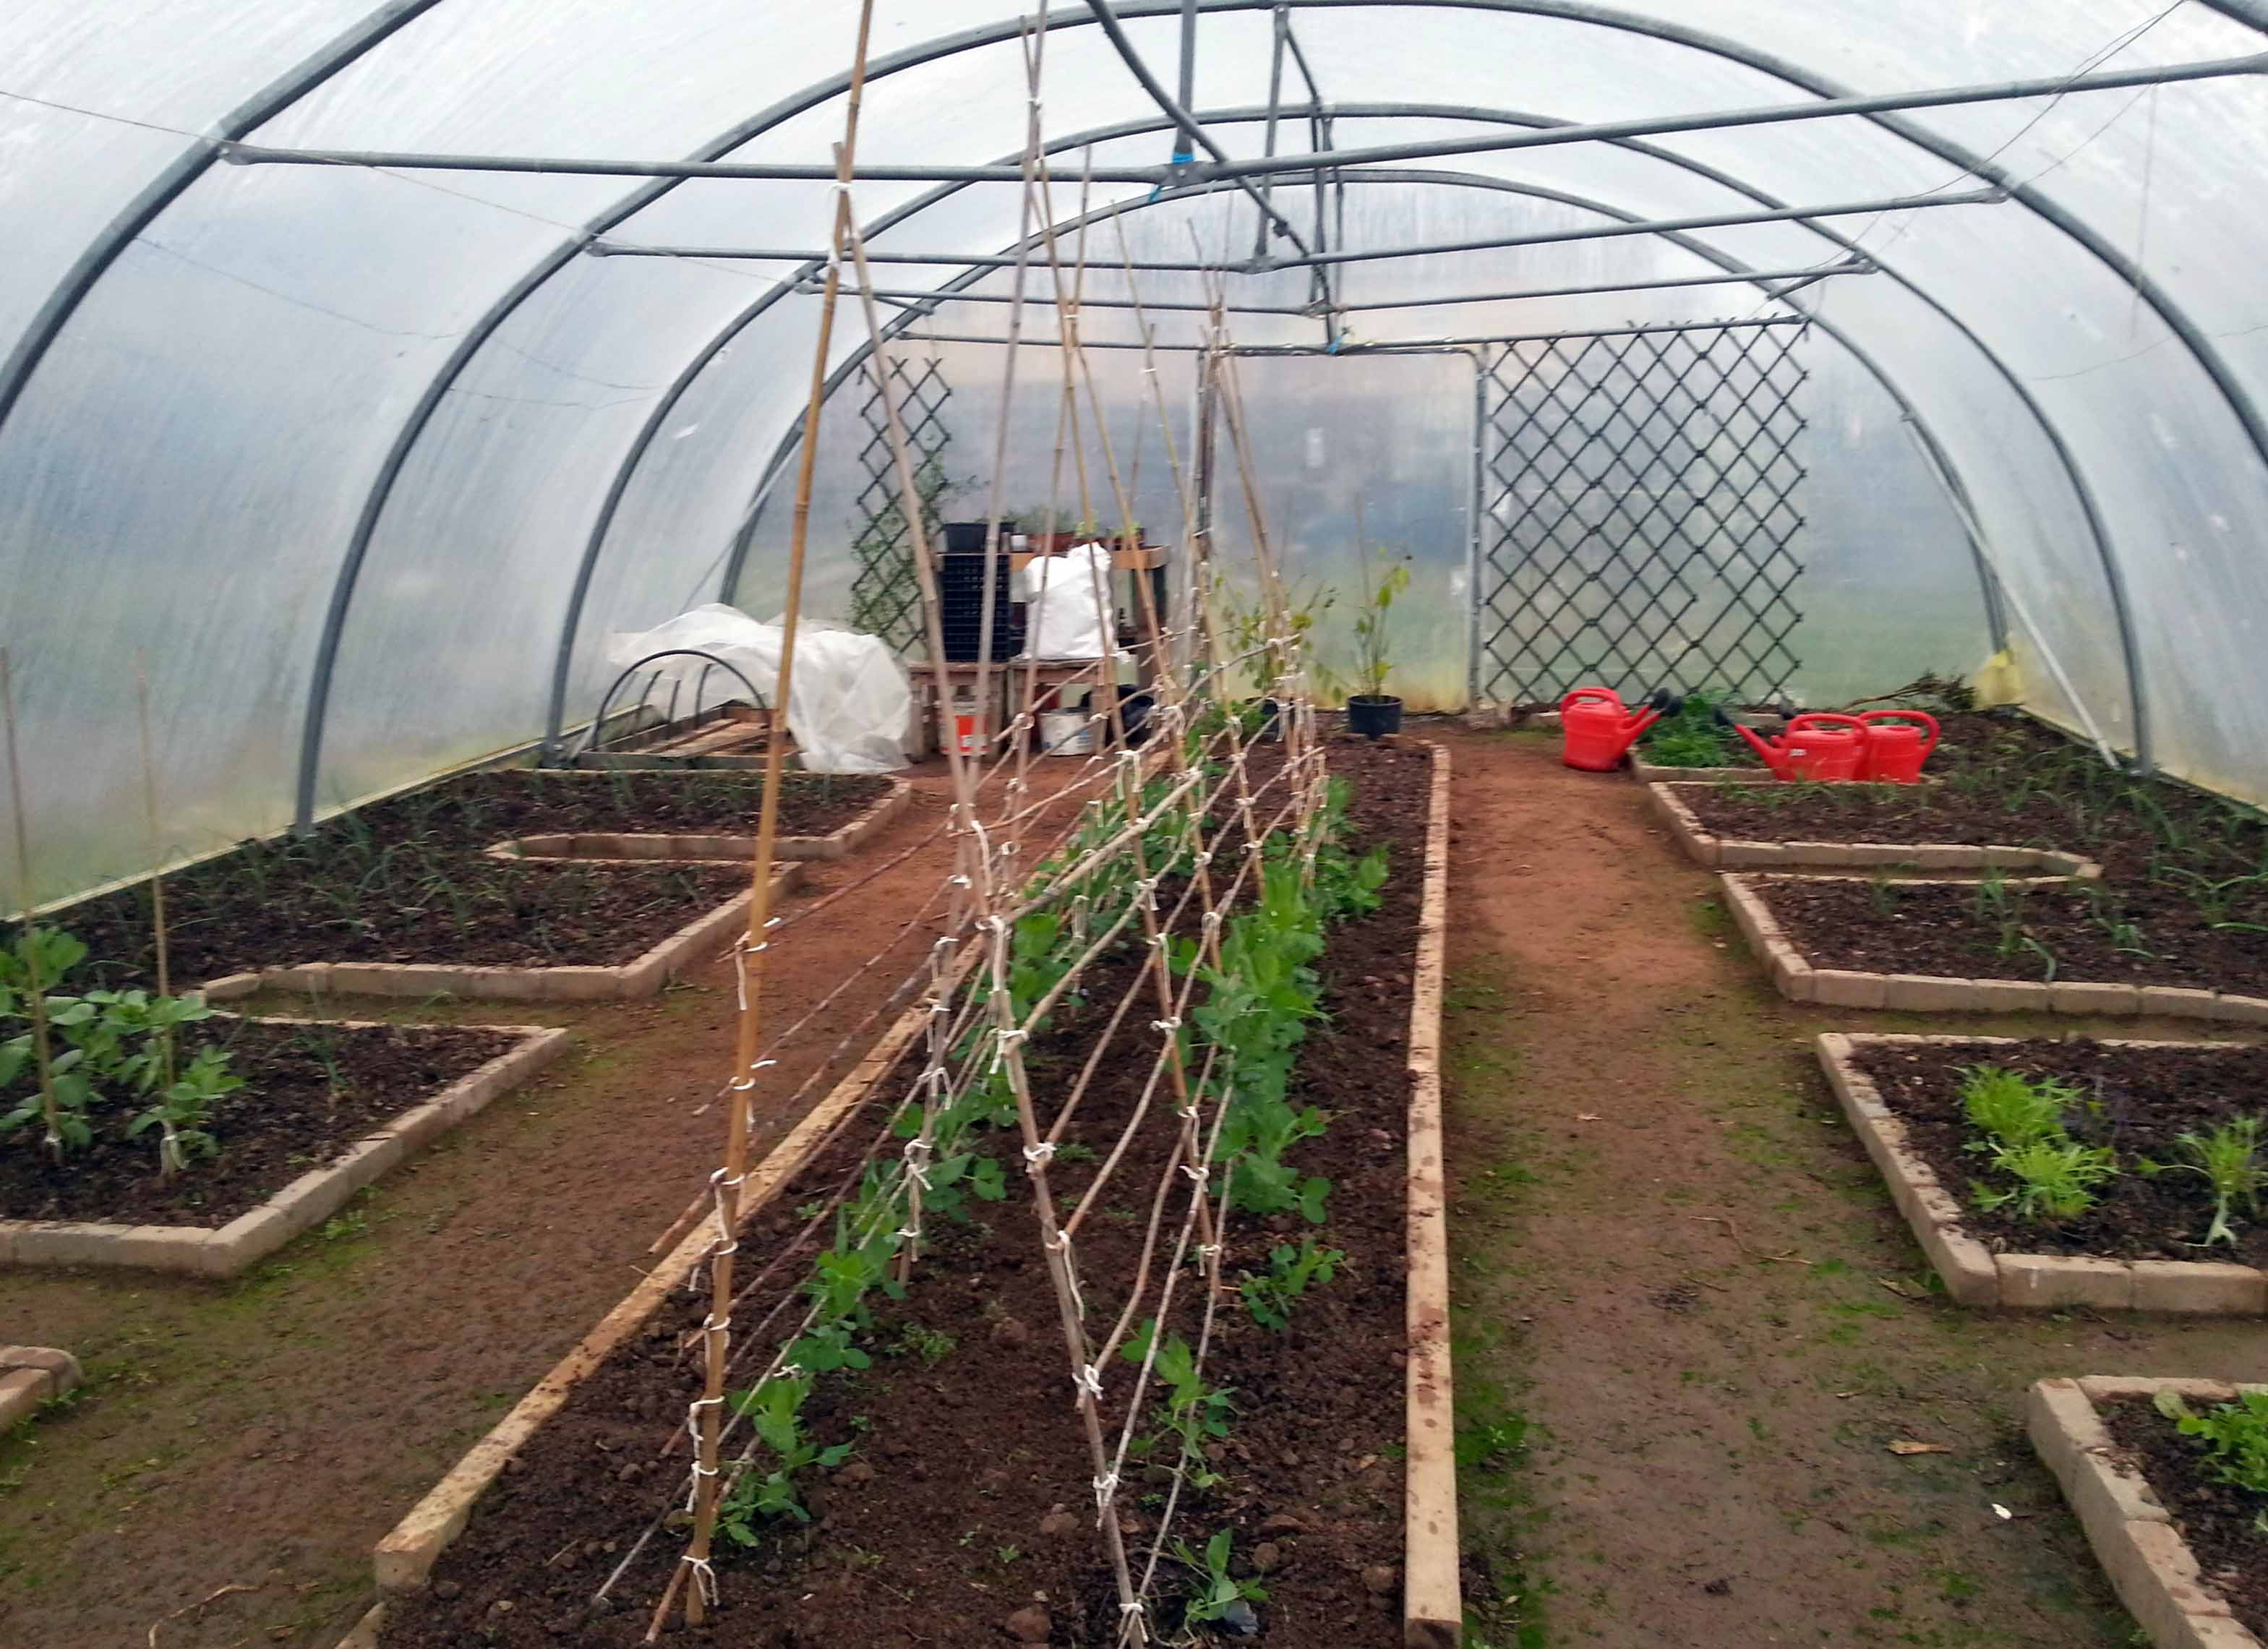 Polytunnel Layout In A Community GardenGreenside Up